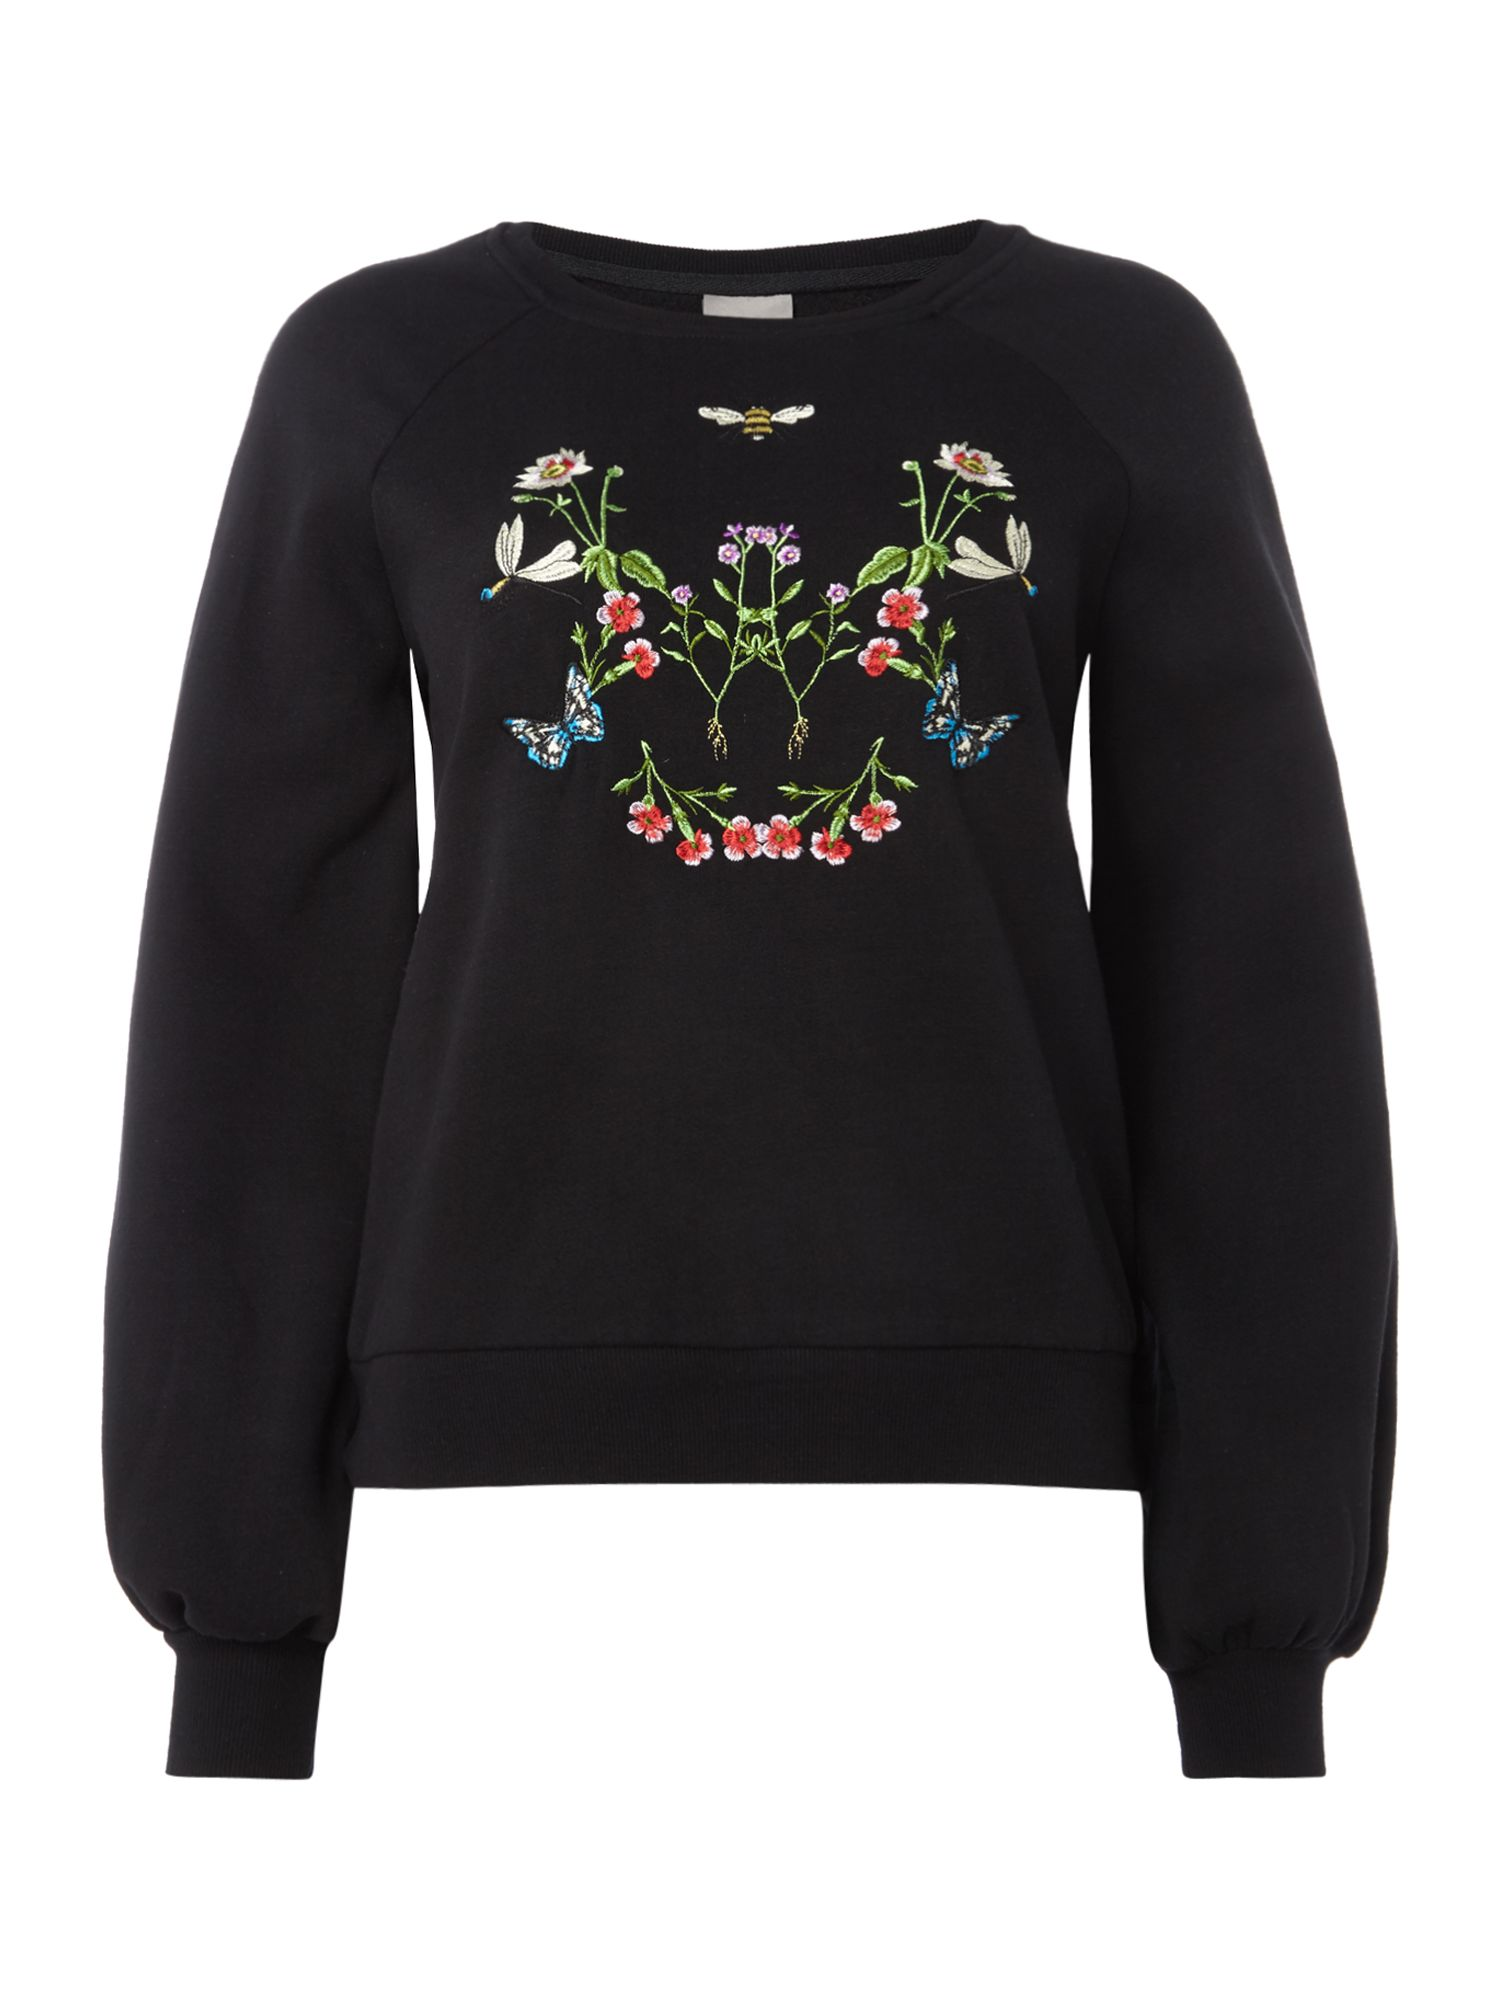 Vero Moda Long sleeves embroidered sweatshirt, Black